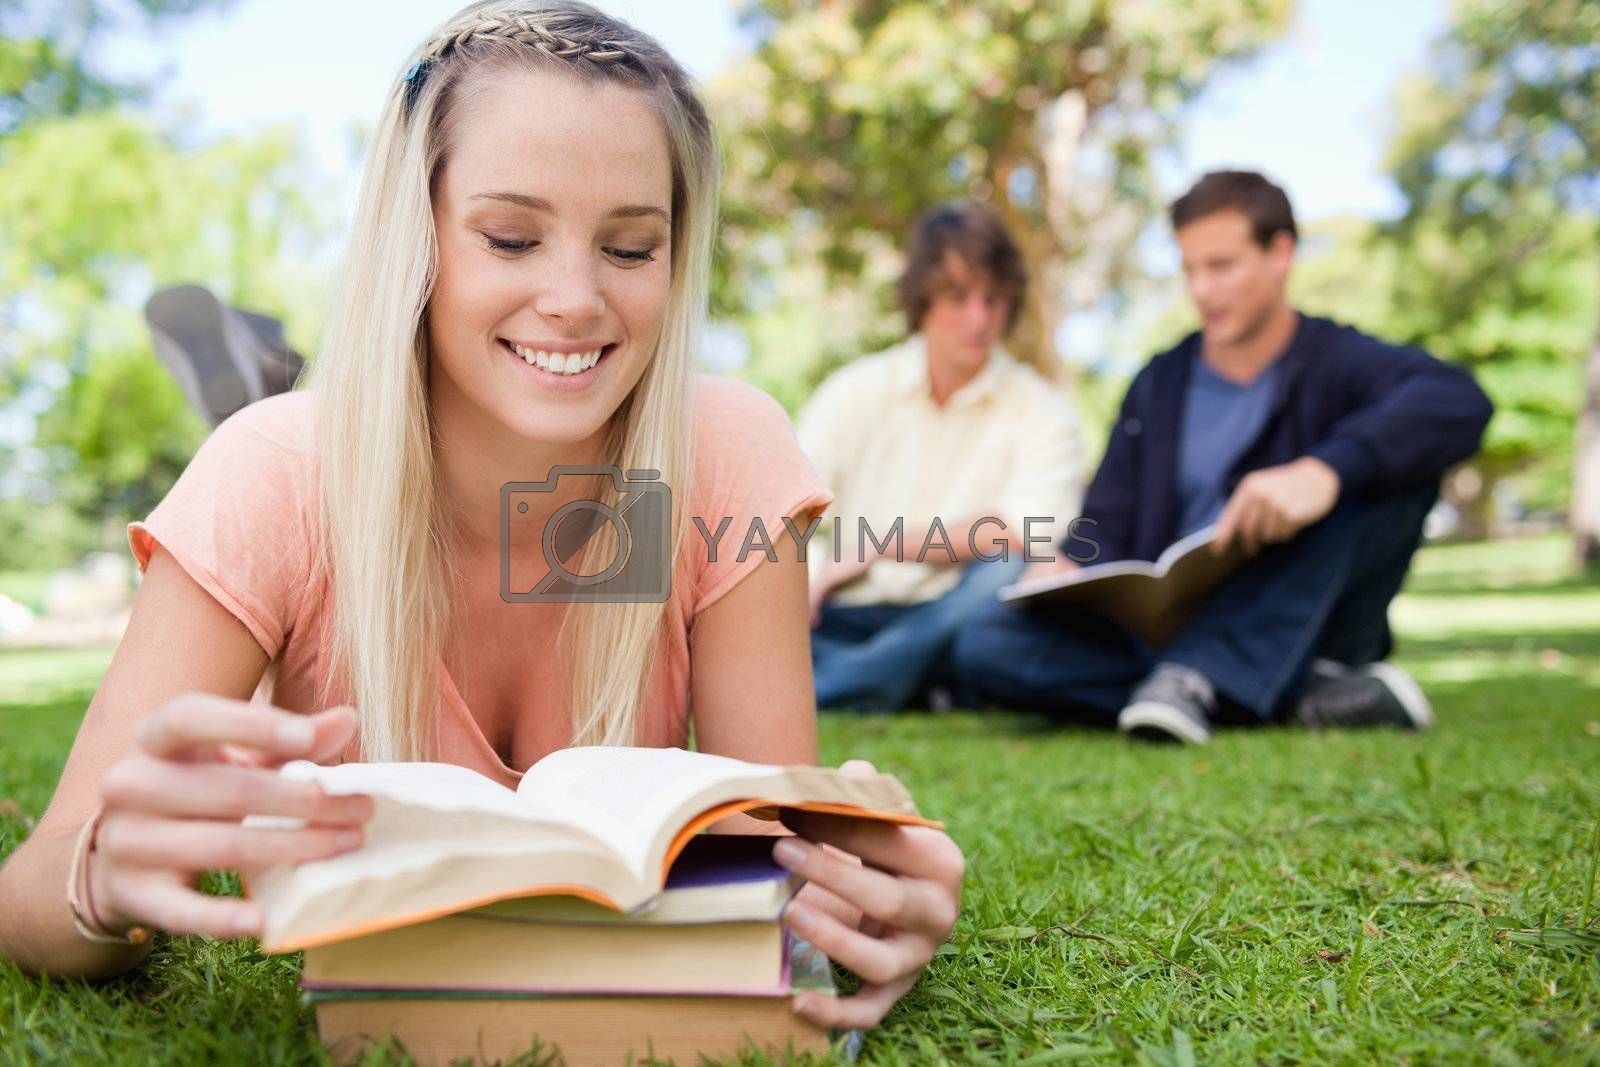 Girl lying while reading books in a park with friends in background